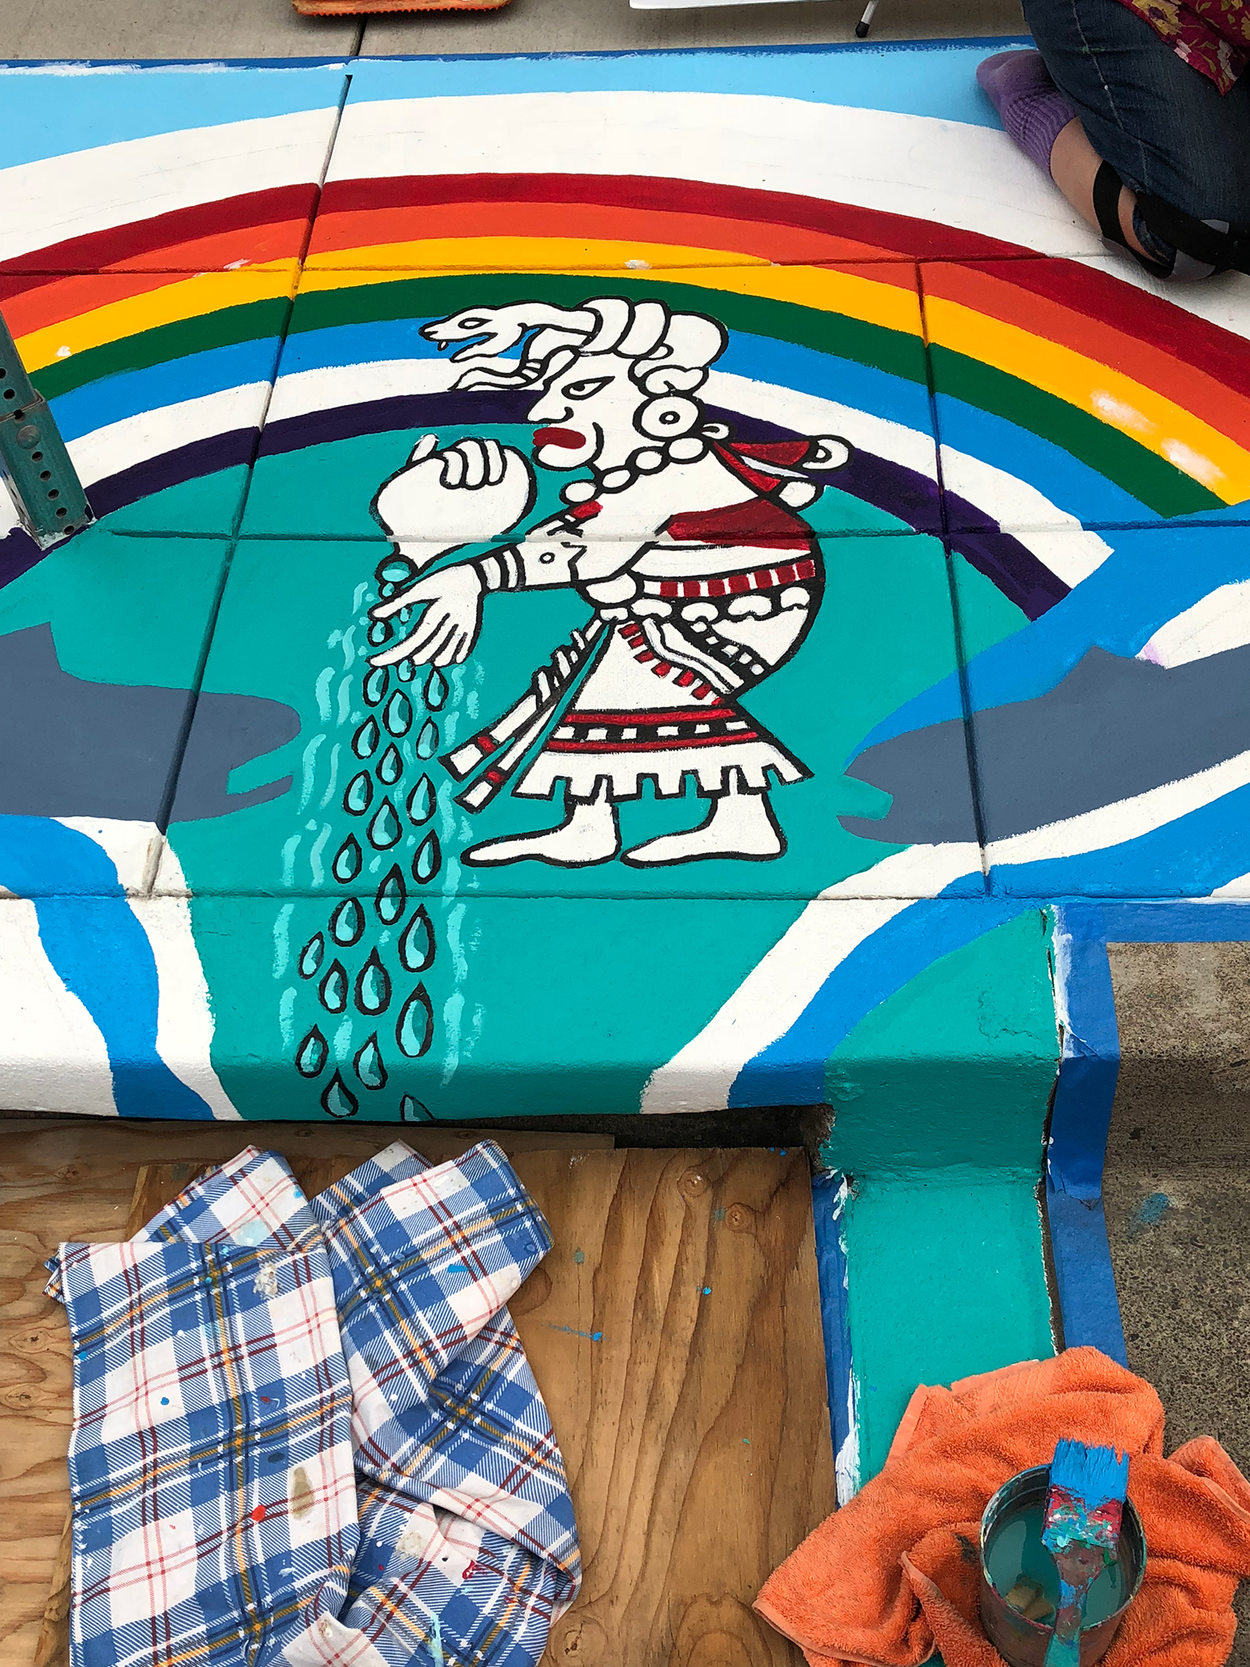 A placemaking mural on the sidewalk in Hillsboro